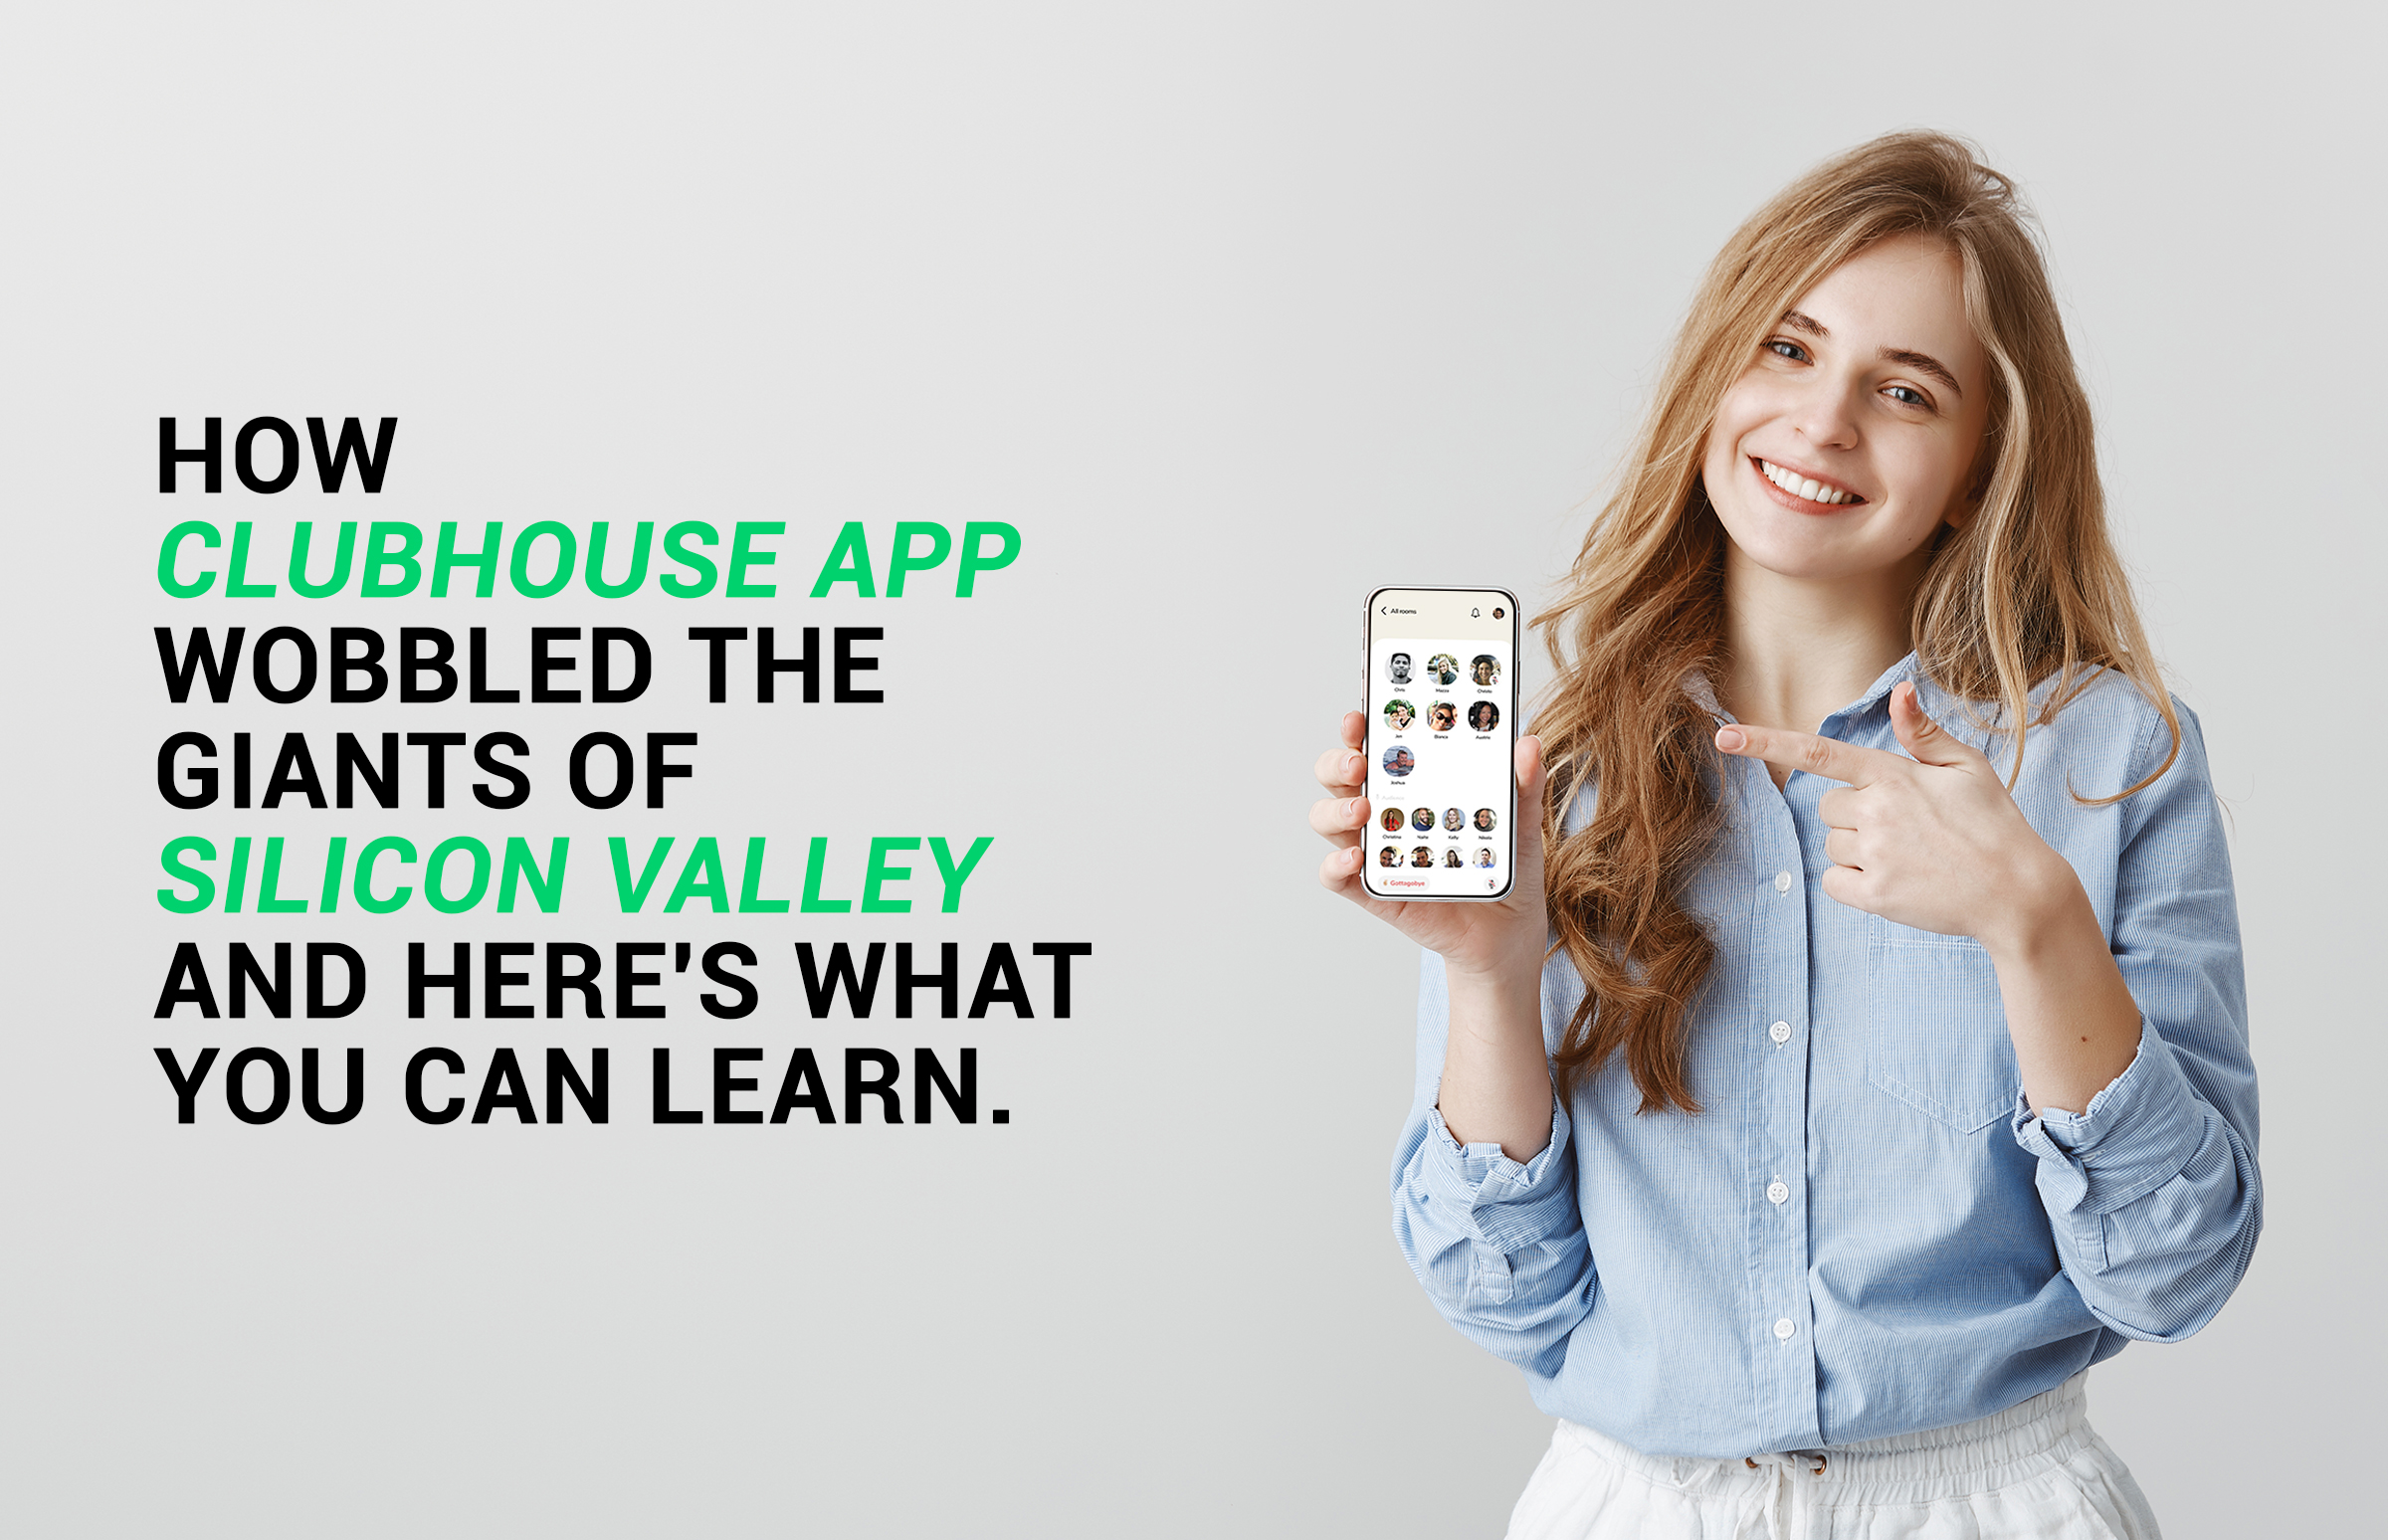 A girl holding a smart phone in her hand